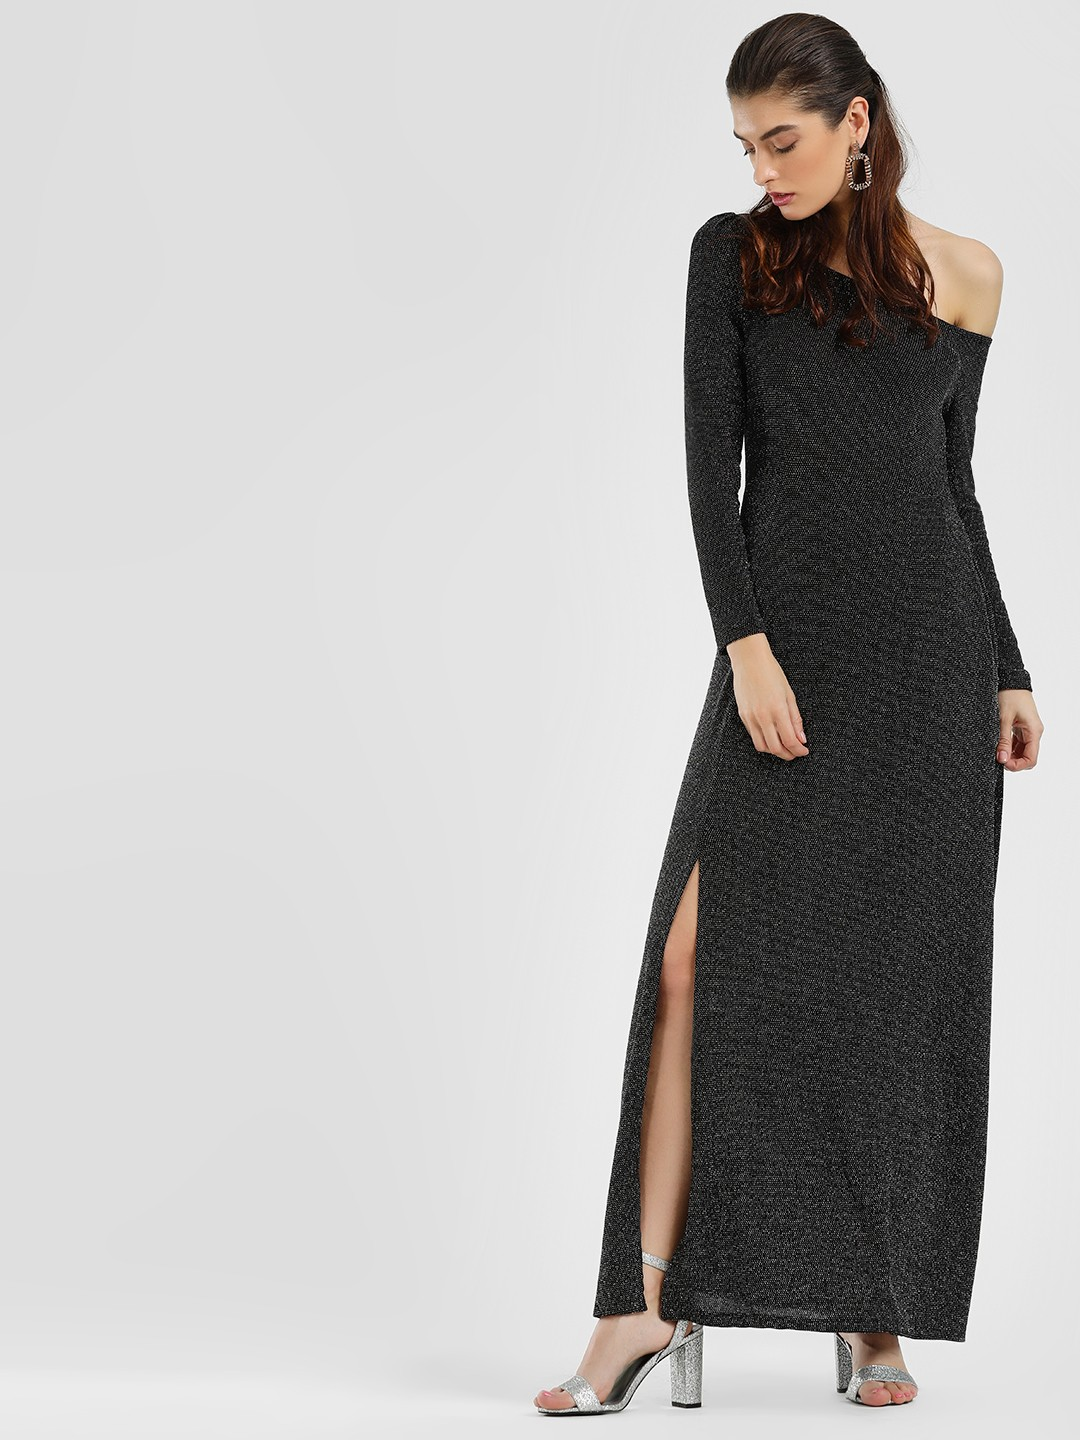 Cover Story Black One Shoulder Maxi Dress 1